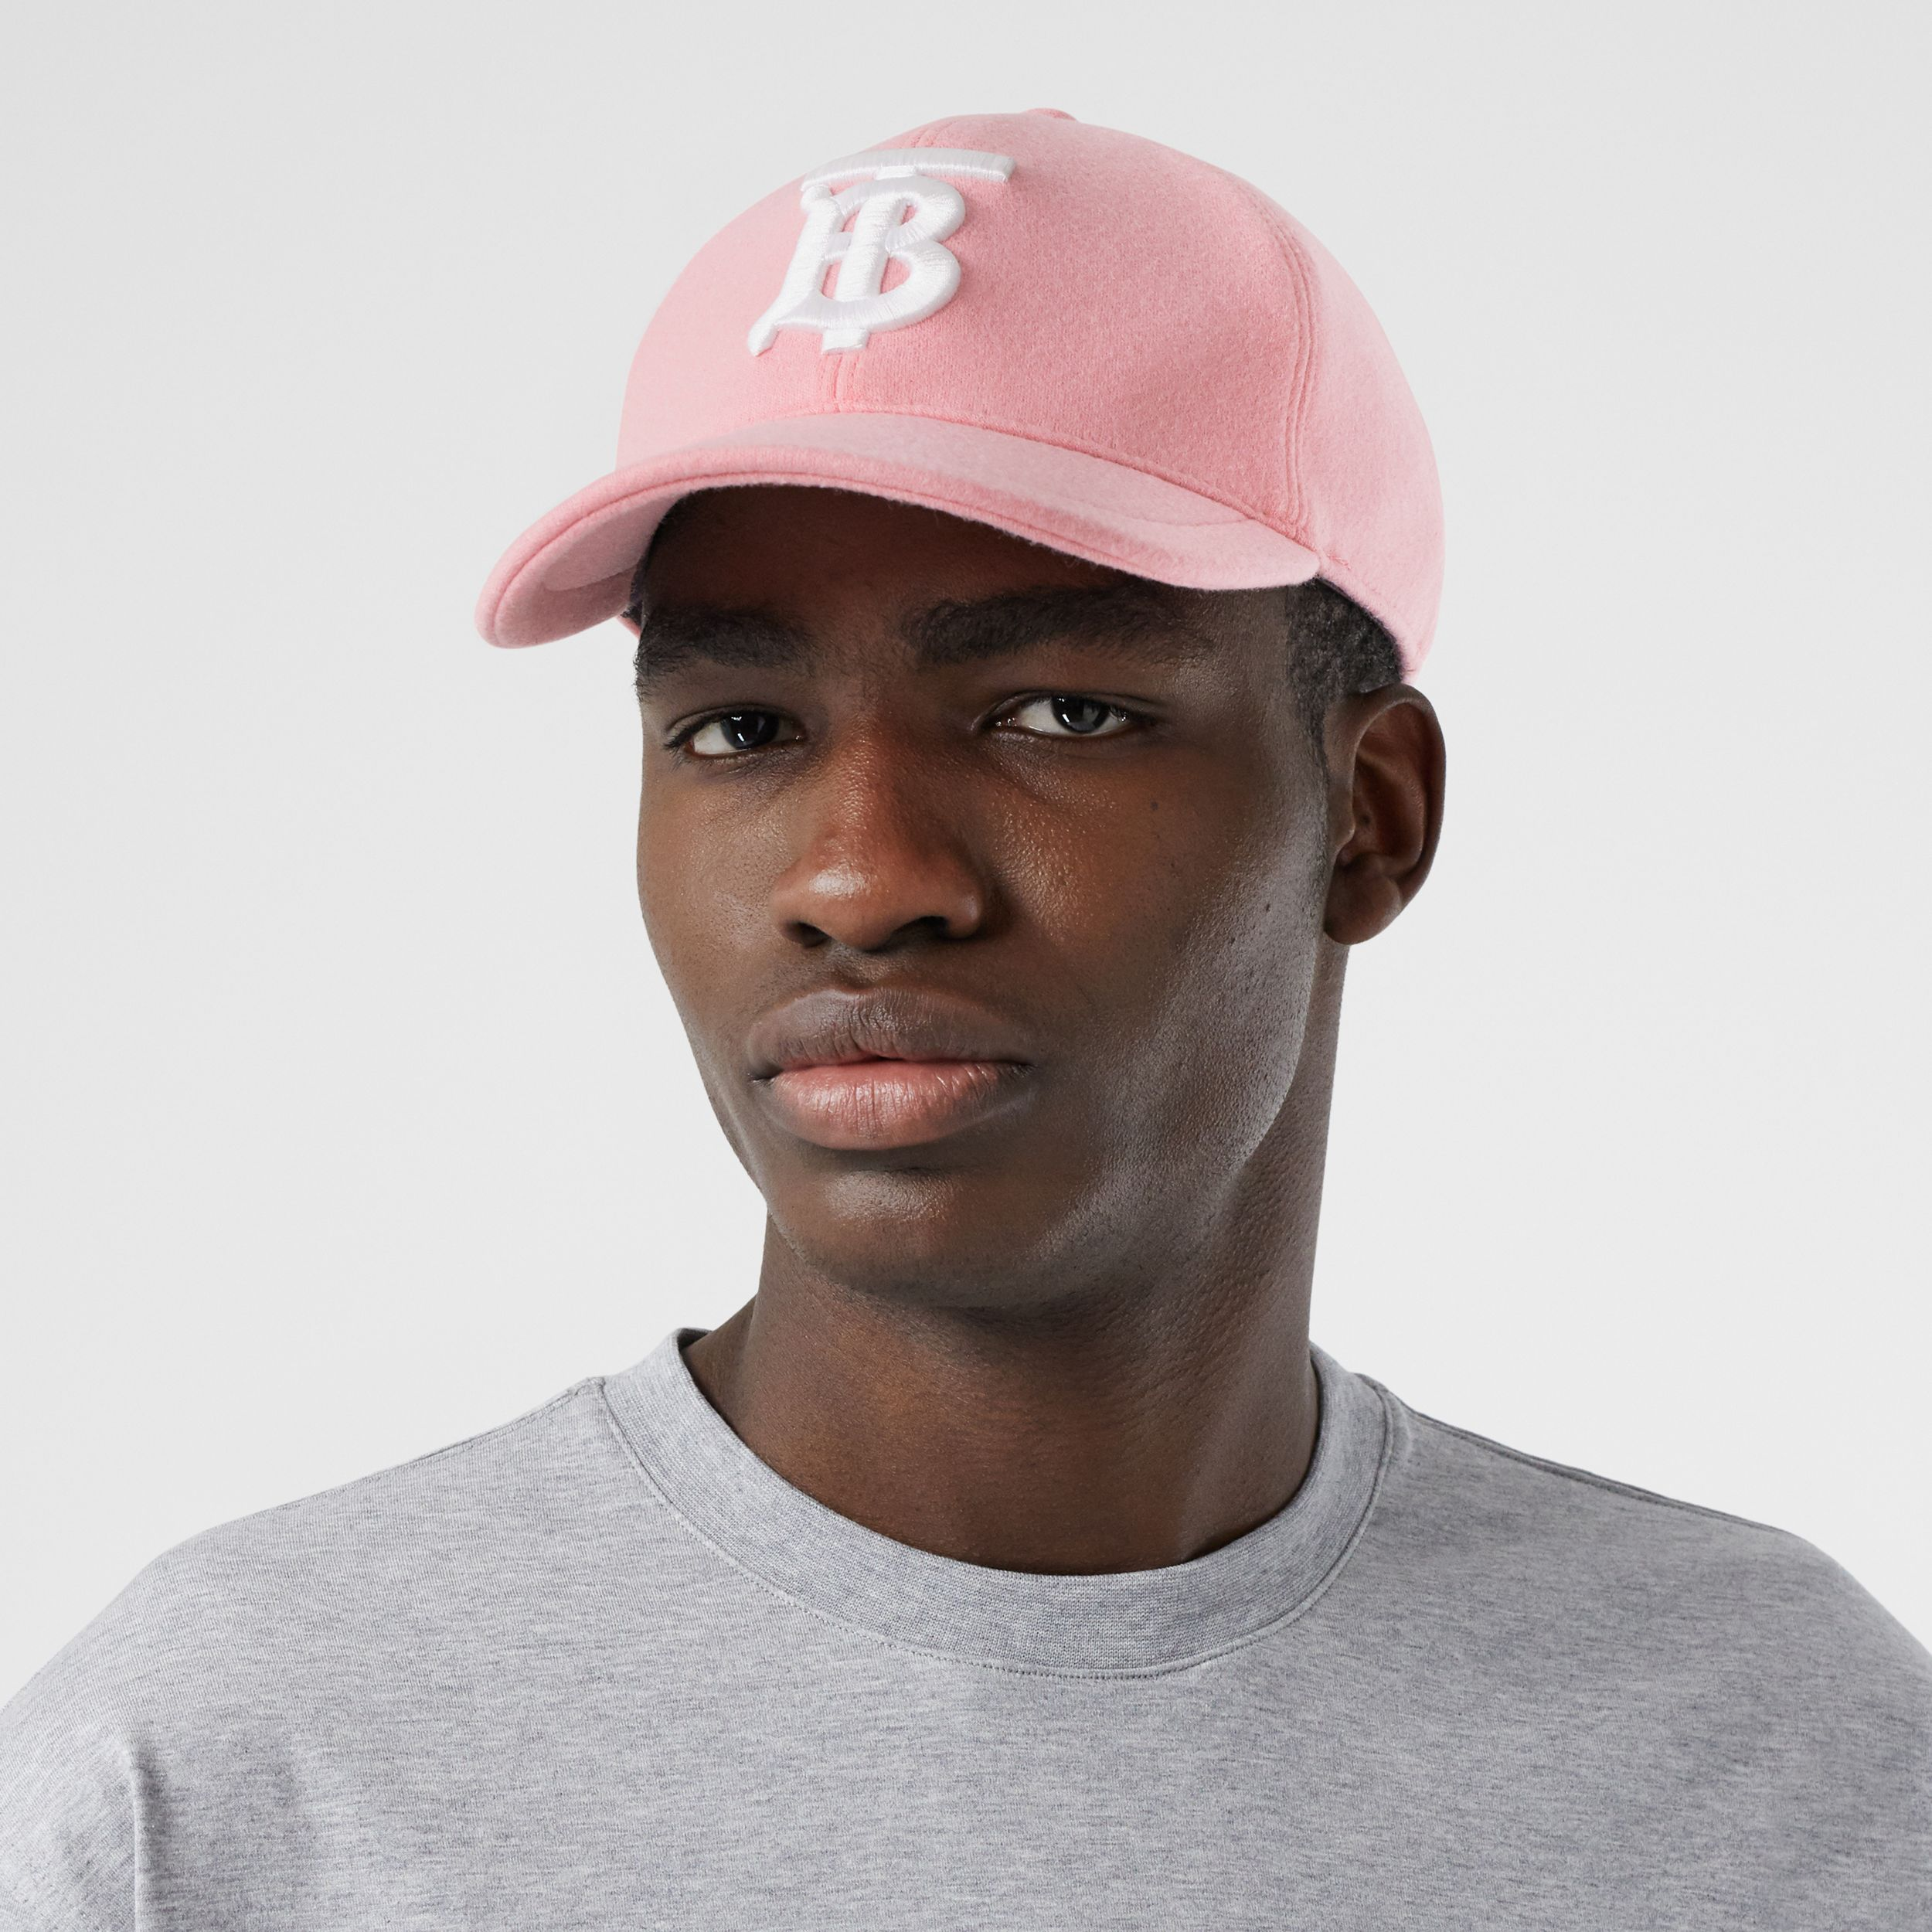 Monogram Motif Jersey Baseball Cap in Pink | Burberry - 4